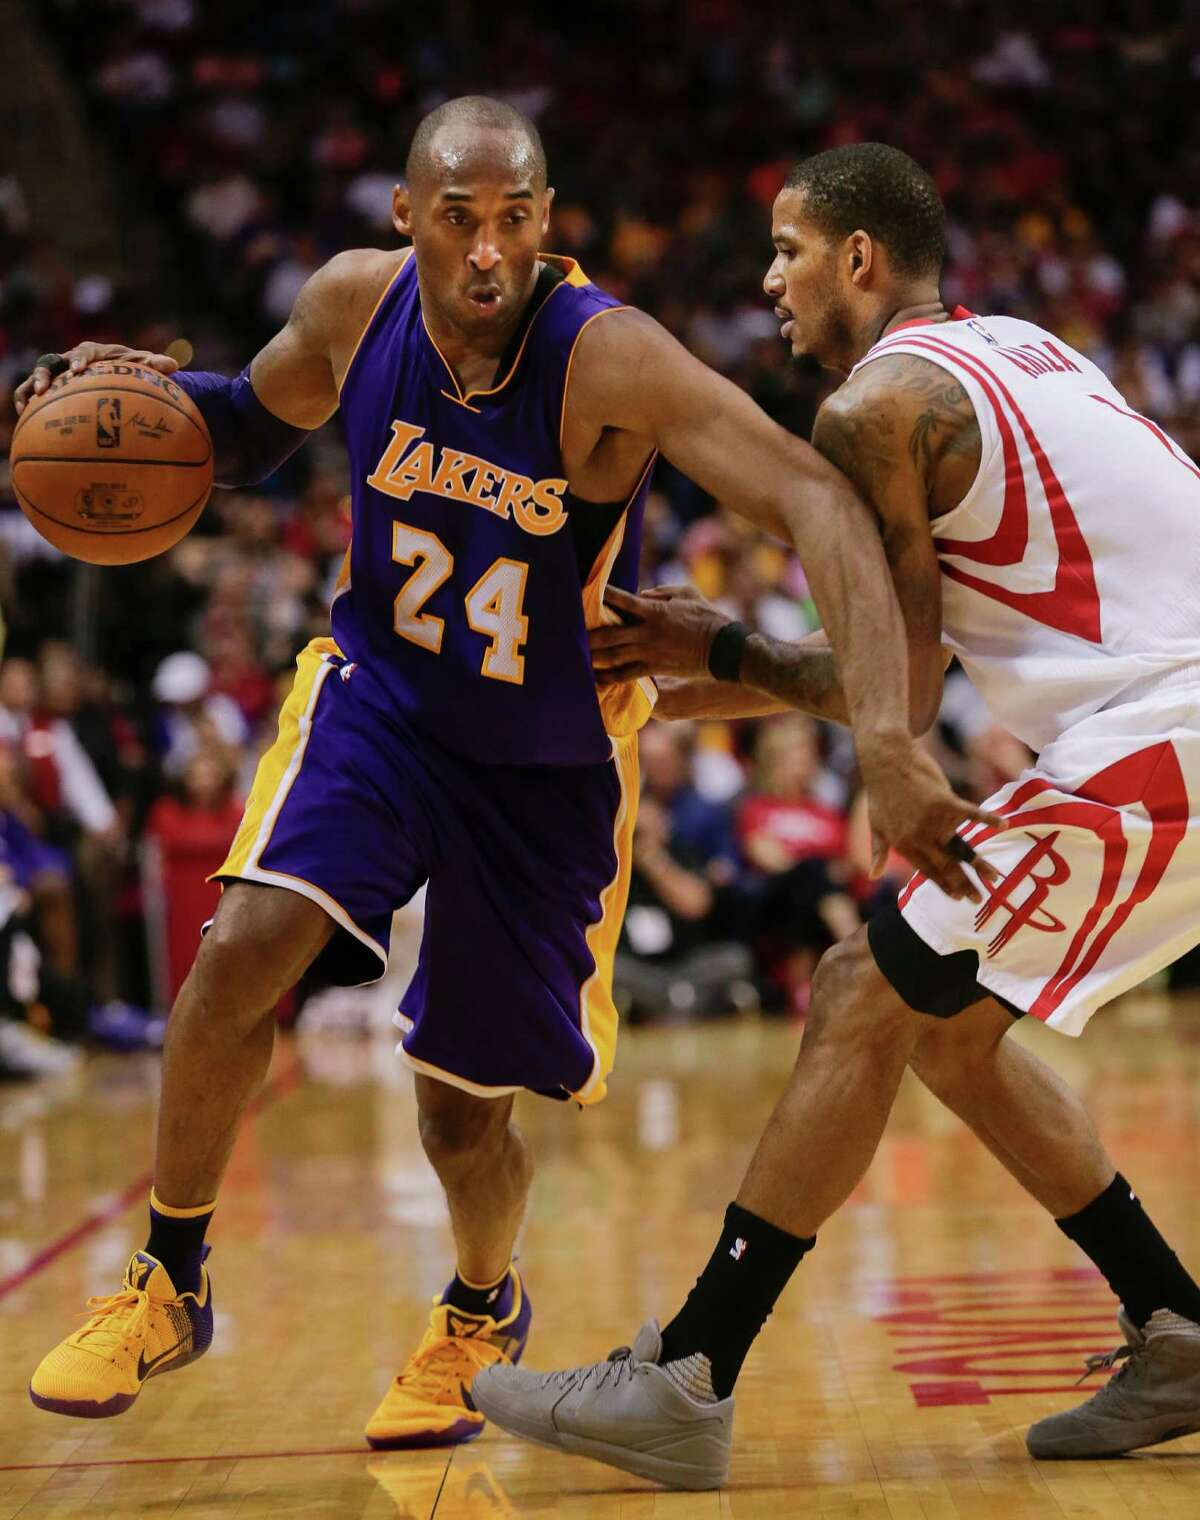 HOUSTON, TEXAS - APRIL 10: Kobe Bryant #24 of the Los Angeles Lakers drives around Trevor Ariza #1 of the Houston Rockets in the fourth quarter at Toyota Center on April 10, 2016 in Houston, Texas.